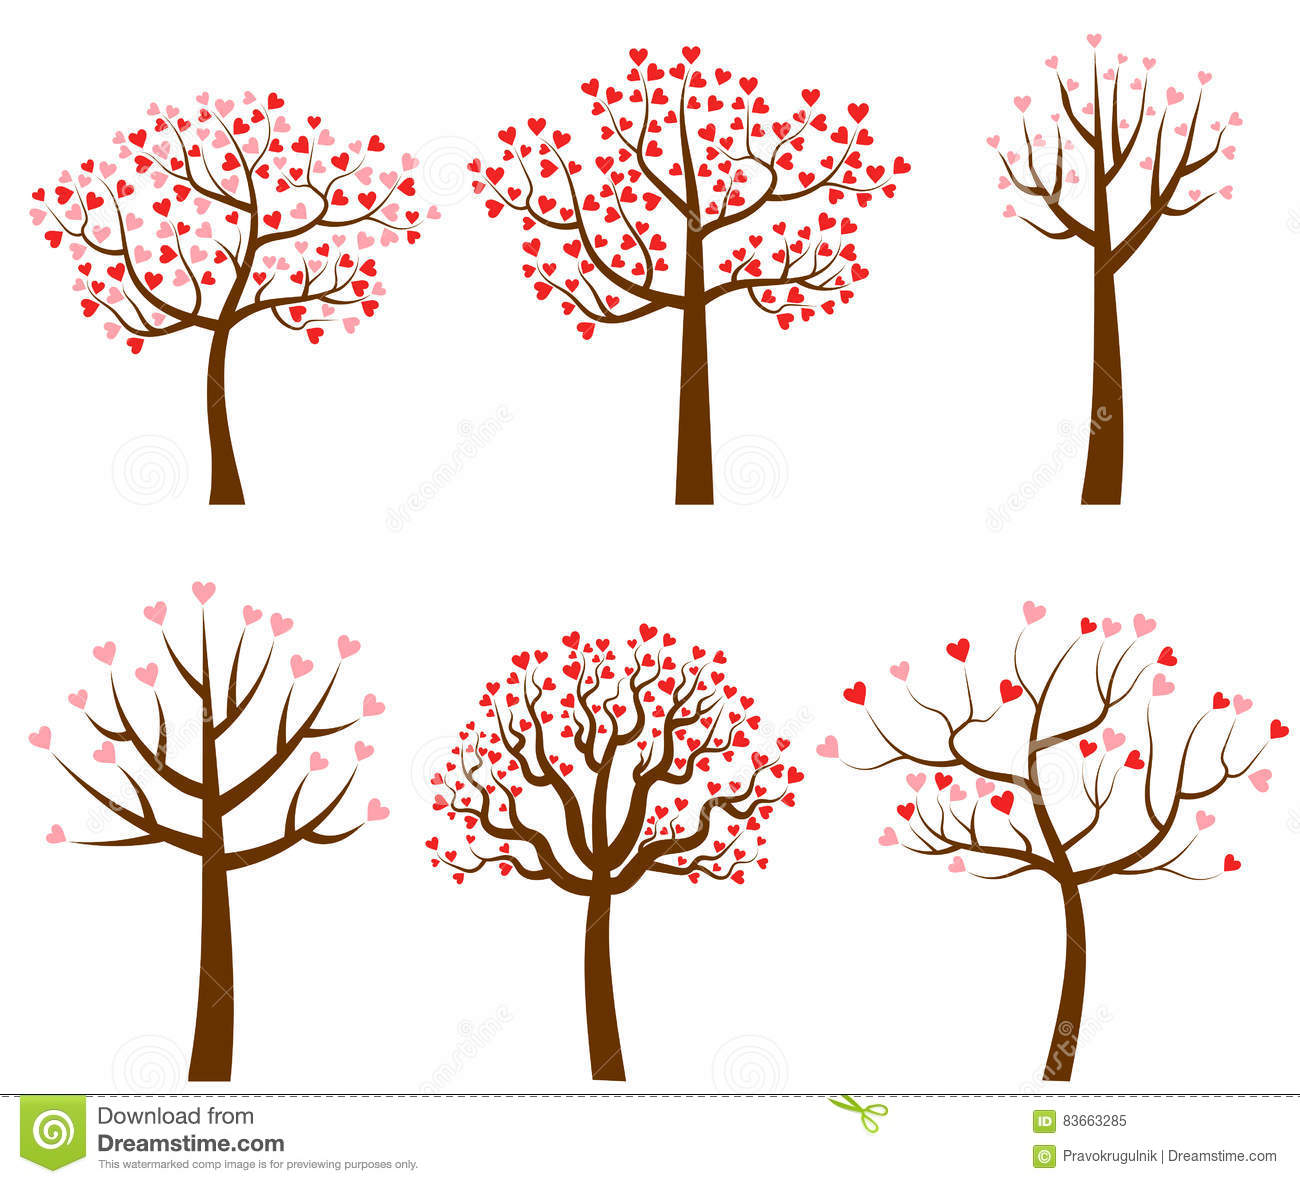 Vector Trees With Red And Pink Heart Shaped Leaves Stock Vector